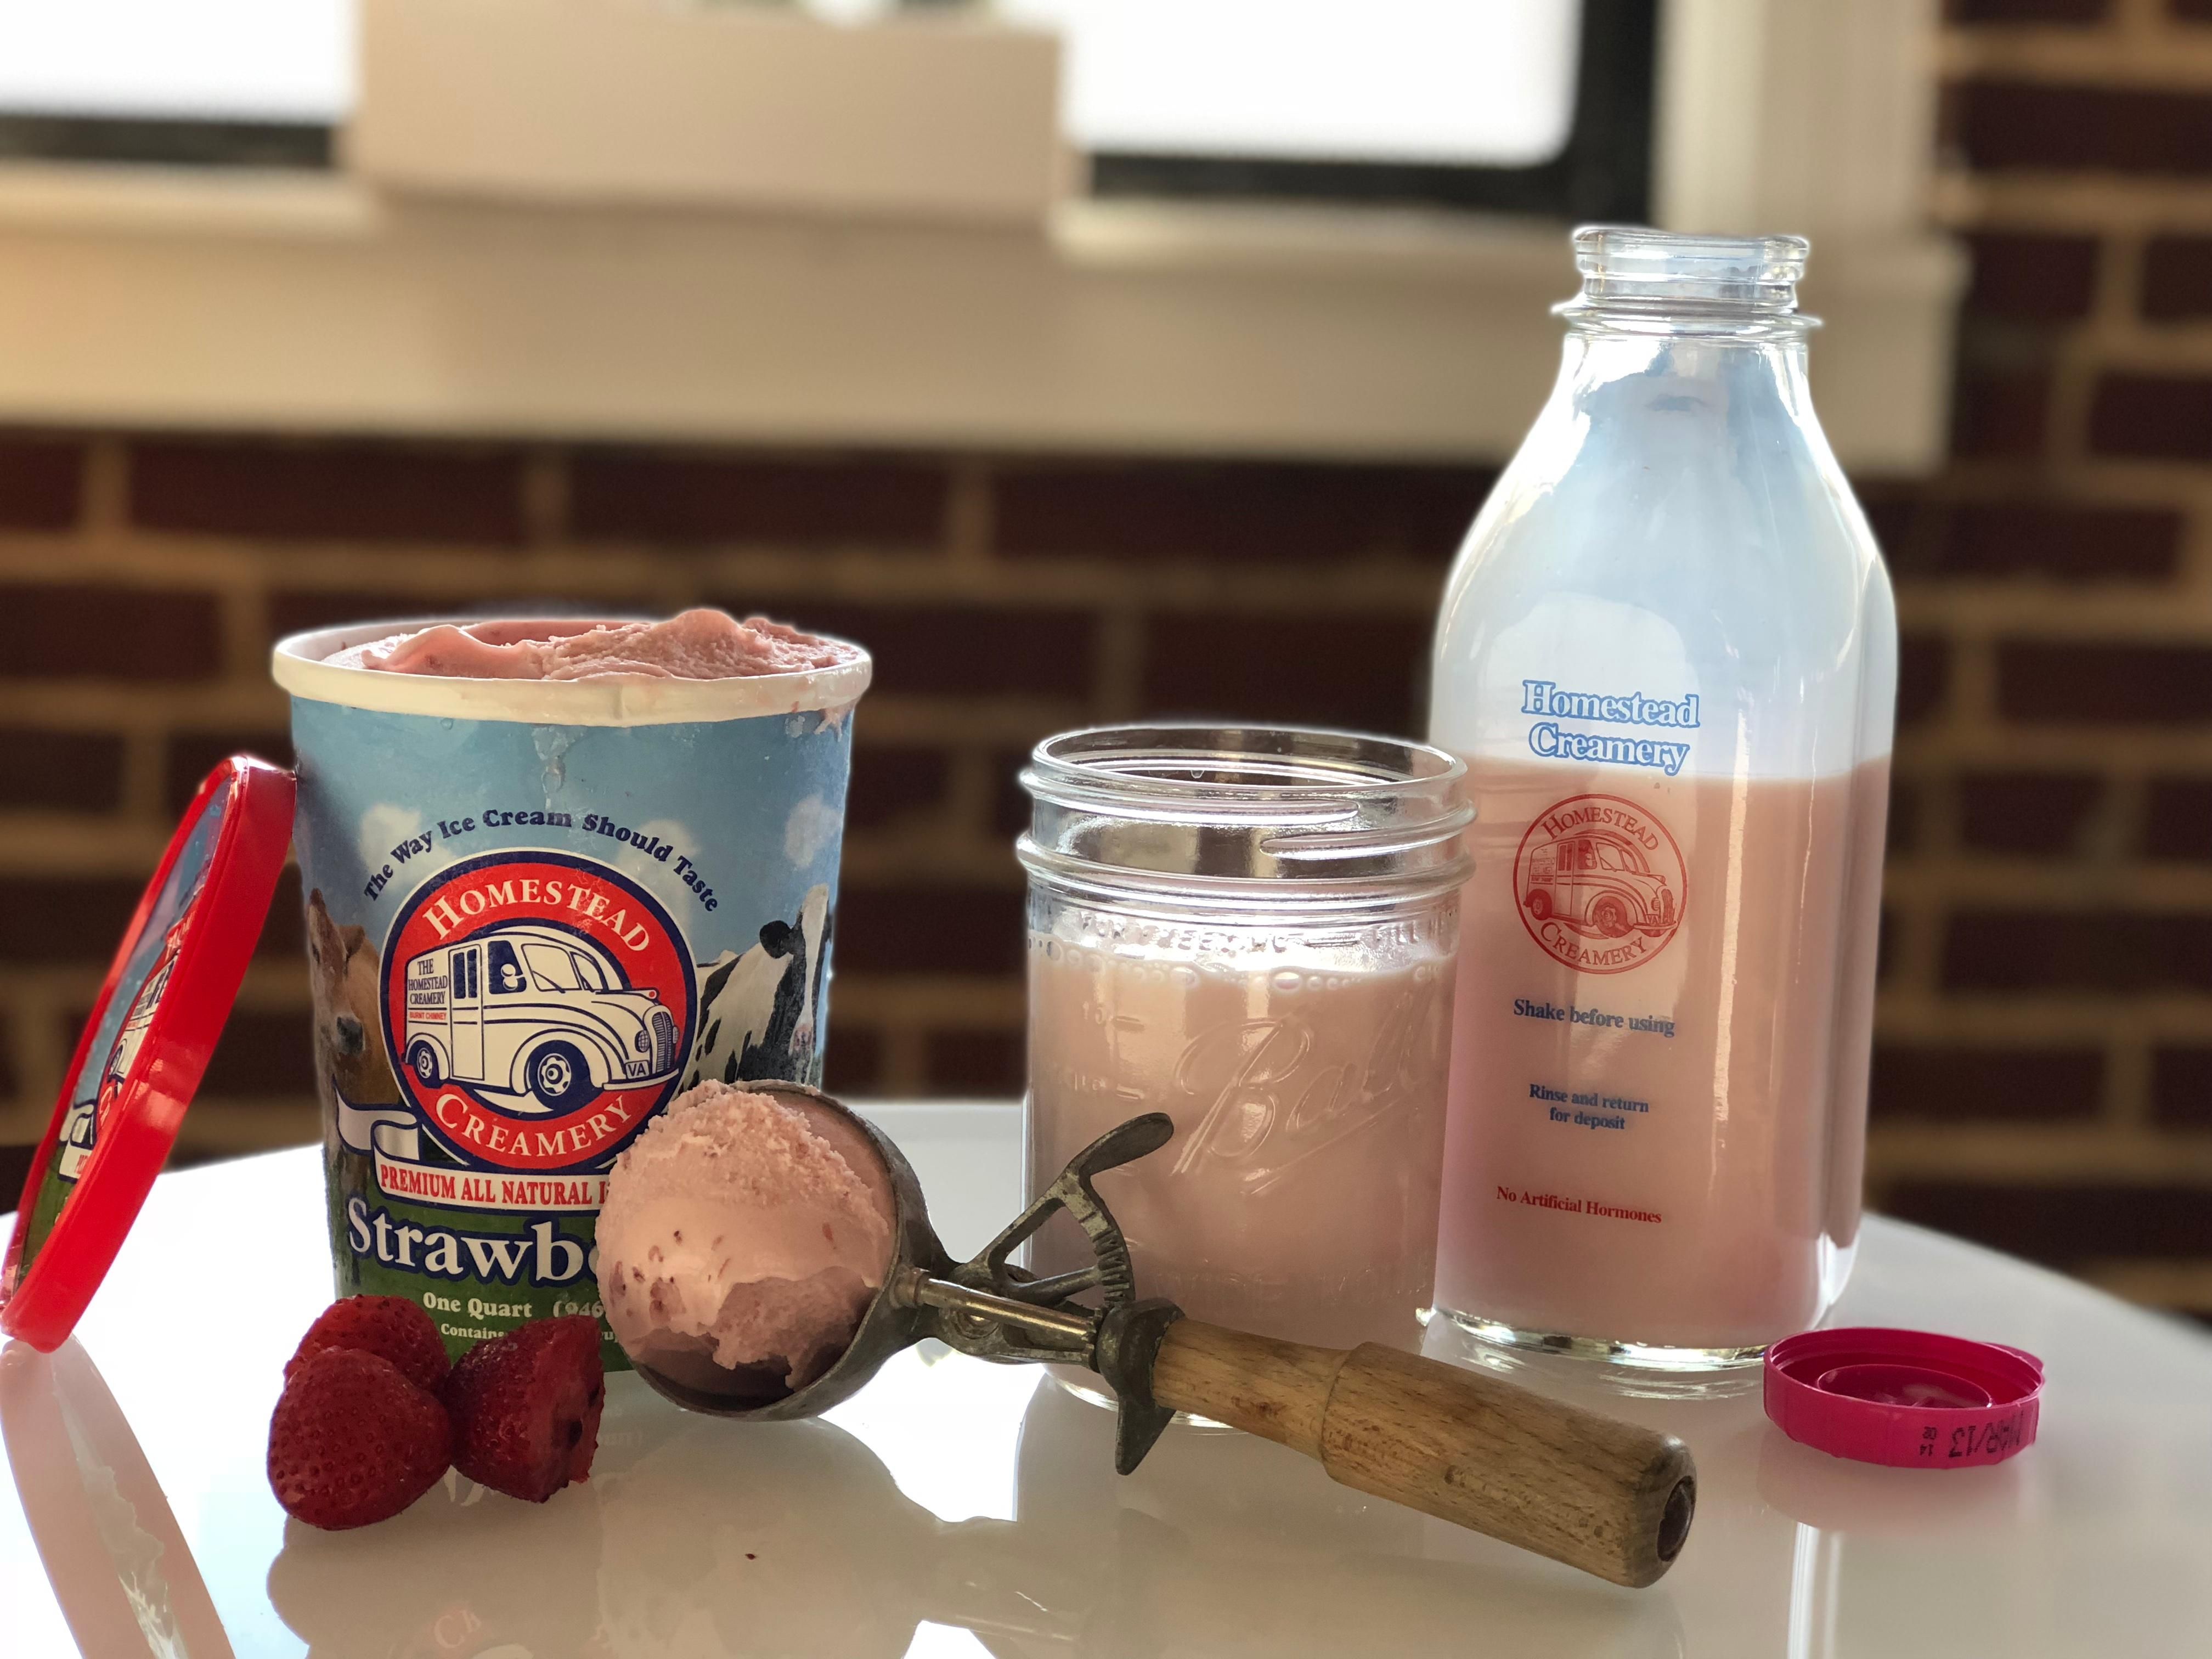 Dairy Dreams Realized (Image: Courtesy Homestead Creamery)